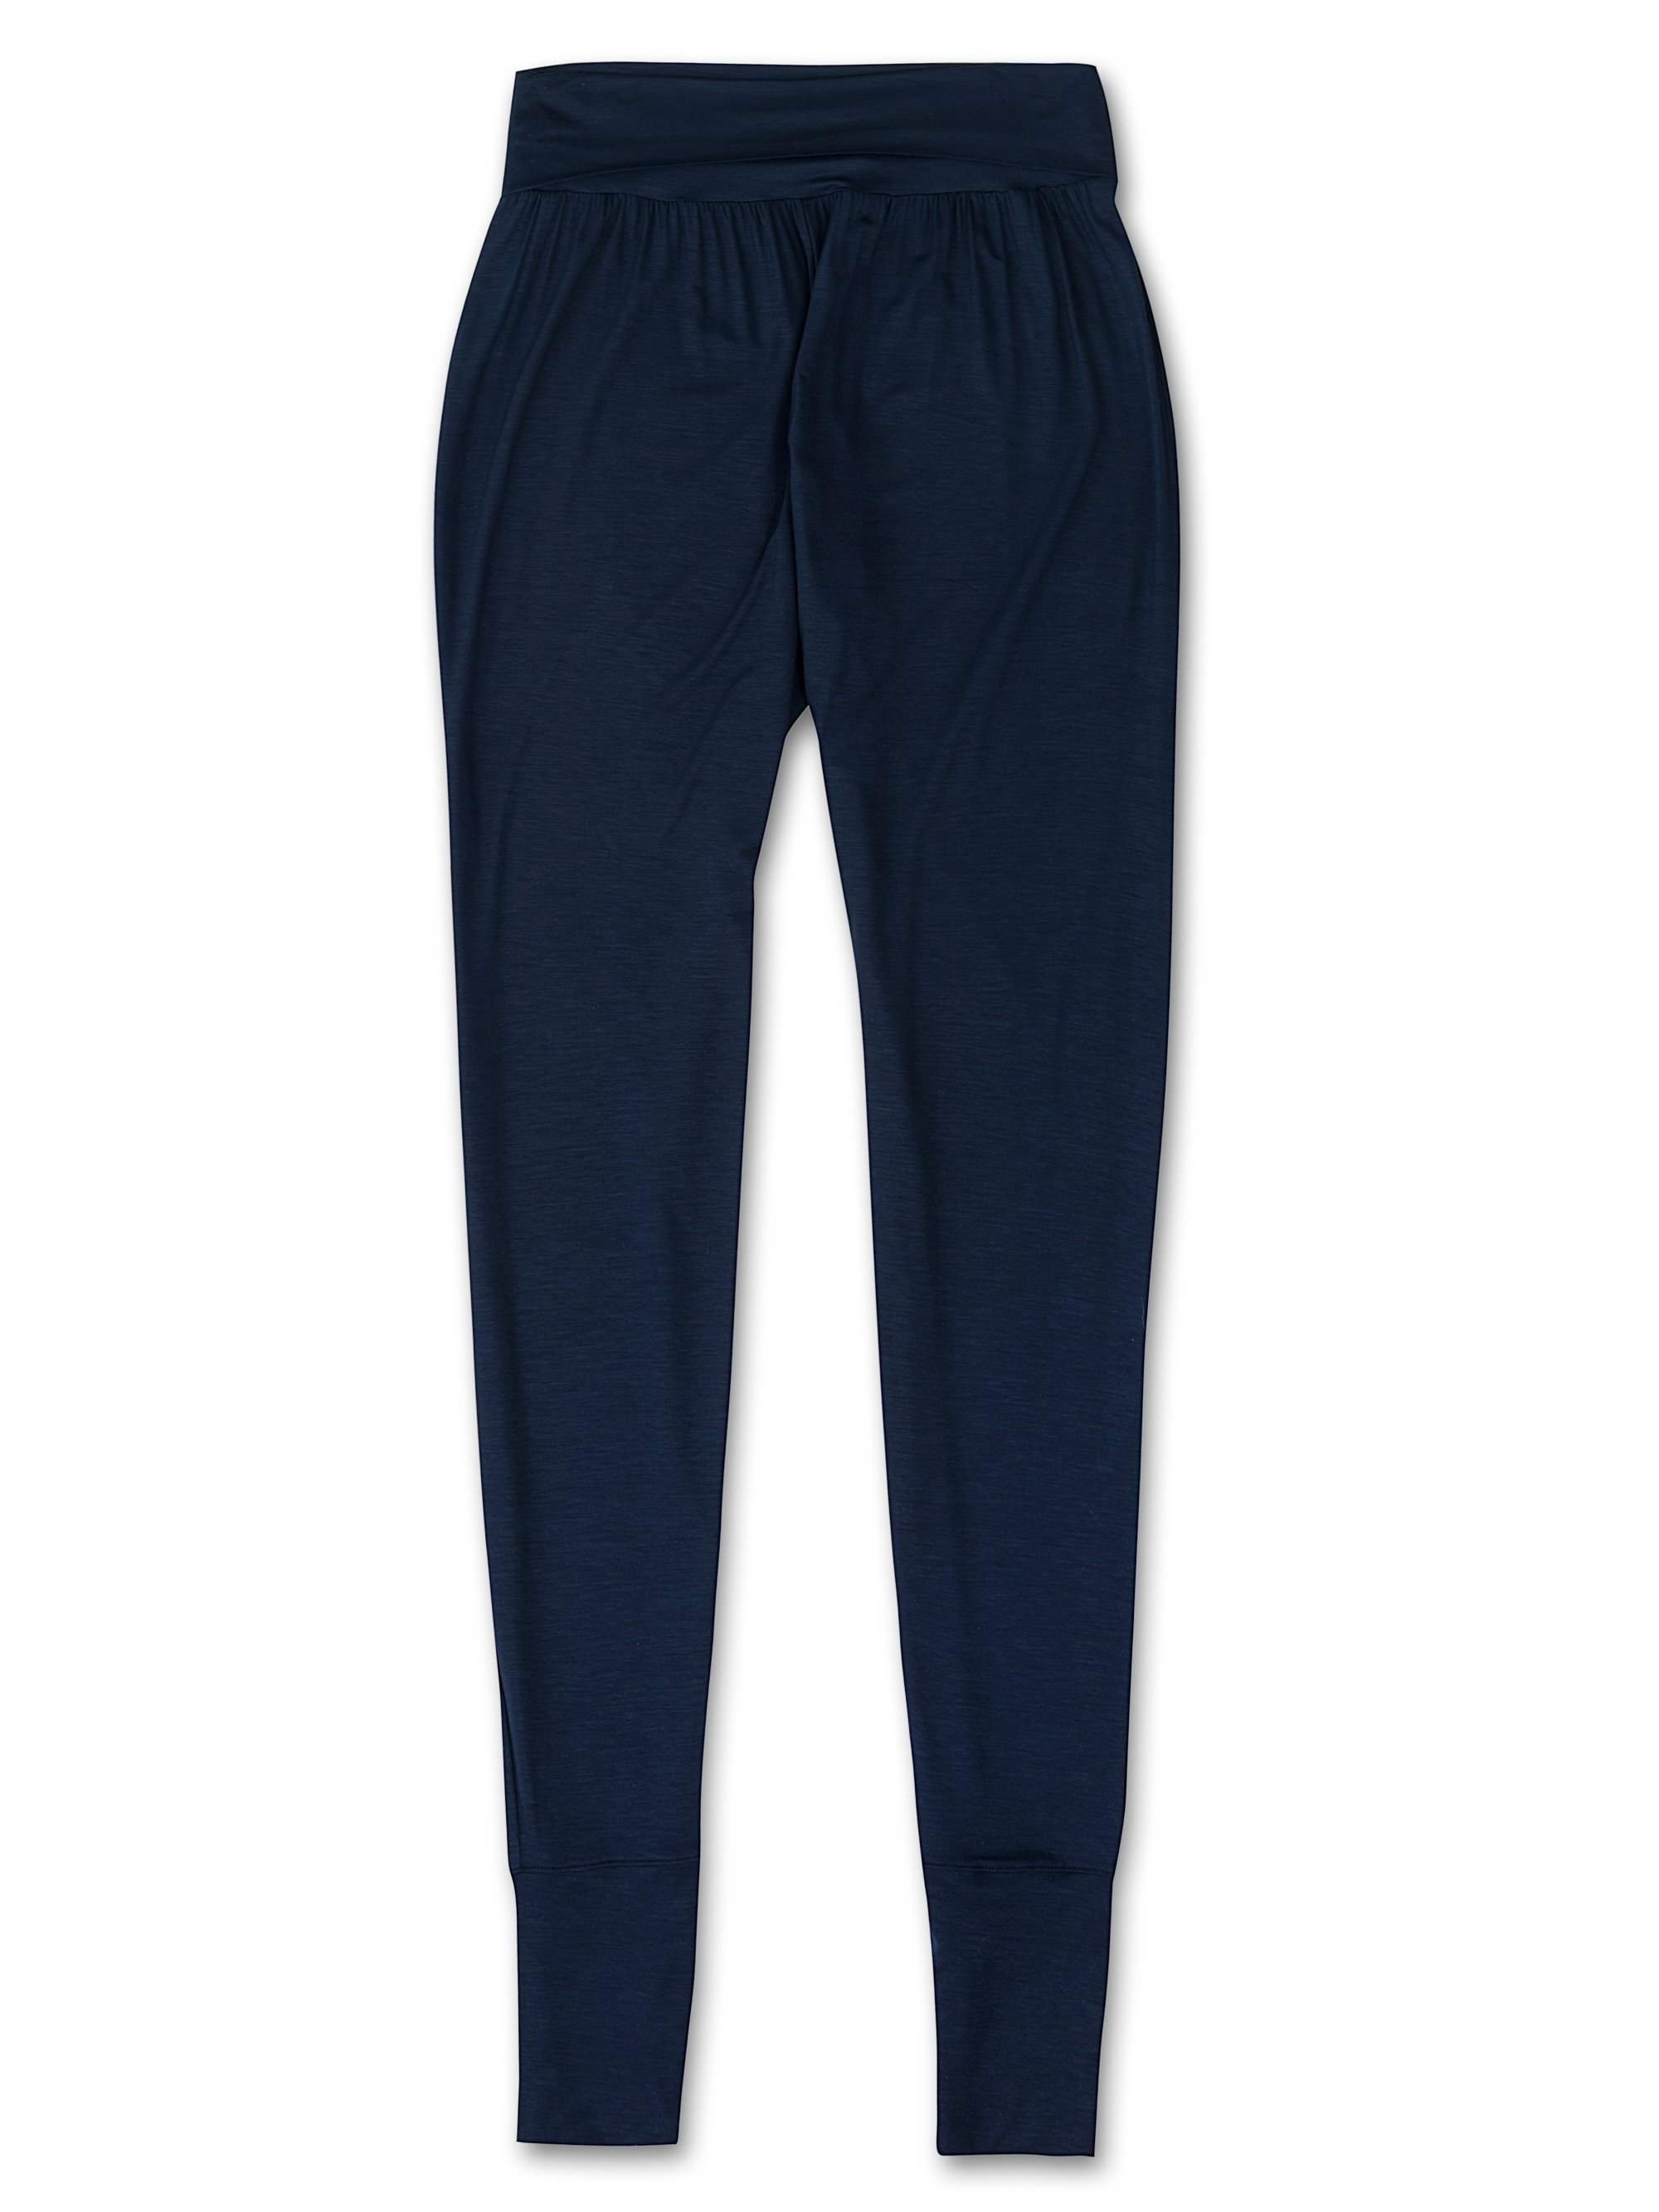 Women's Tapered Lounge Trousers Carla Micro Modal Stretch Midnight